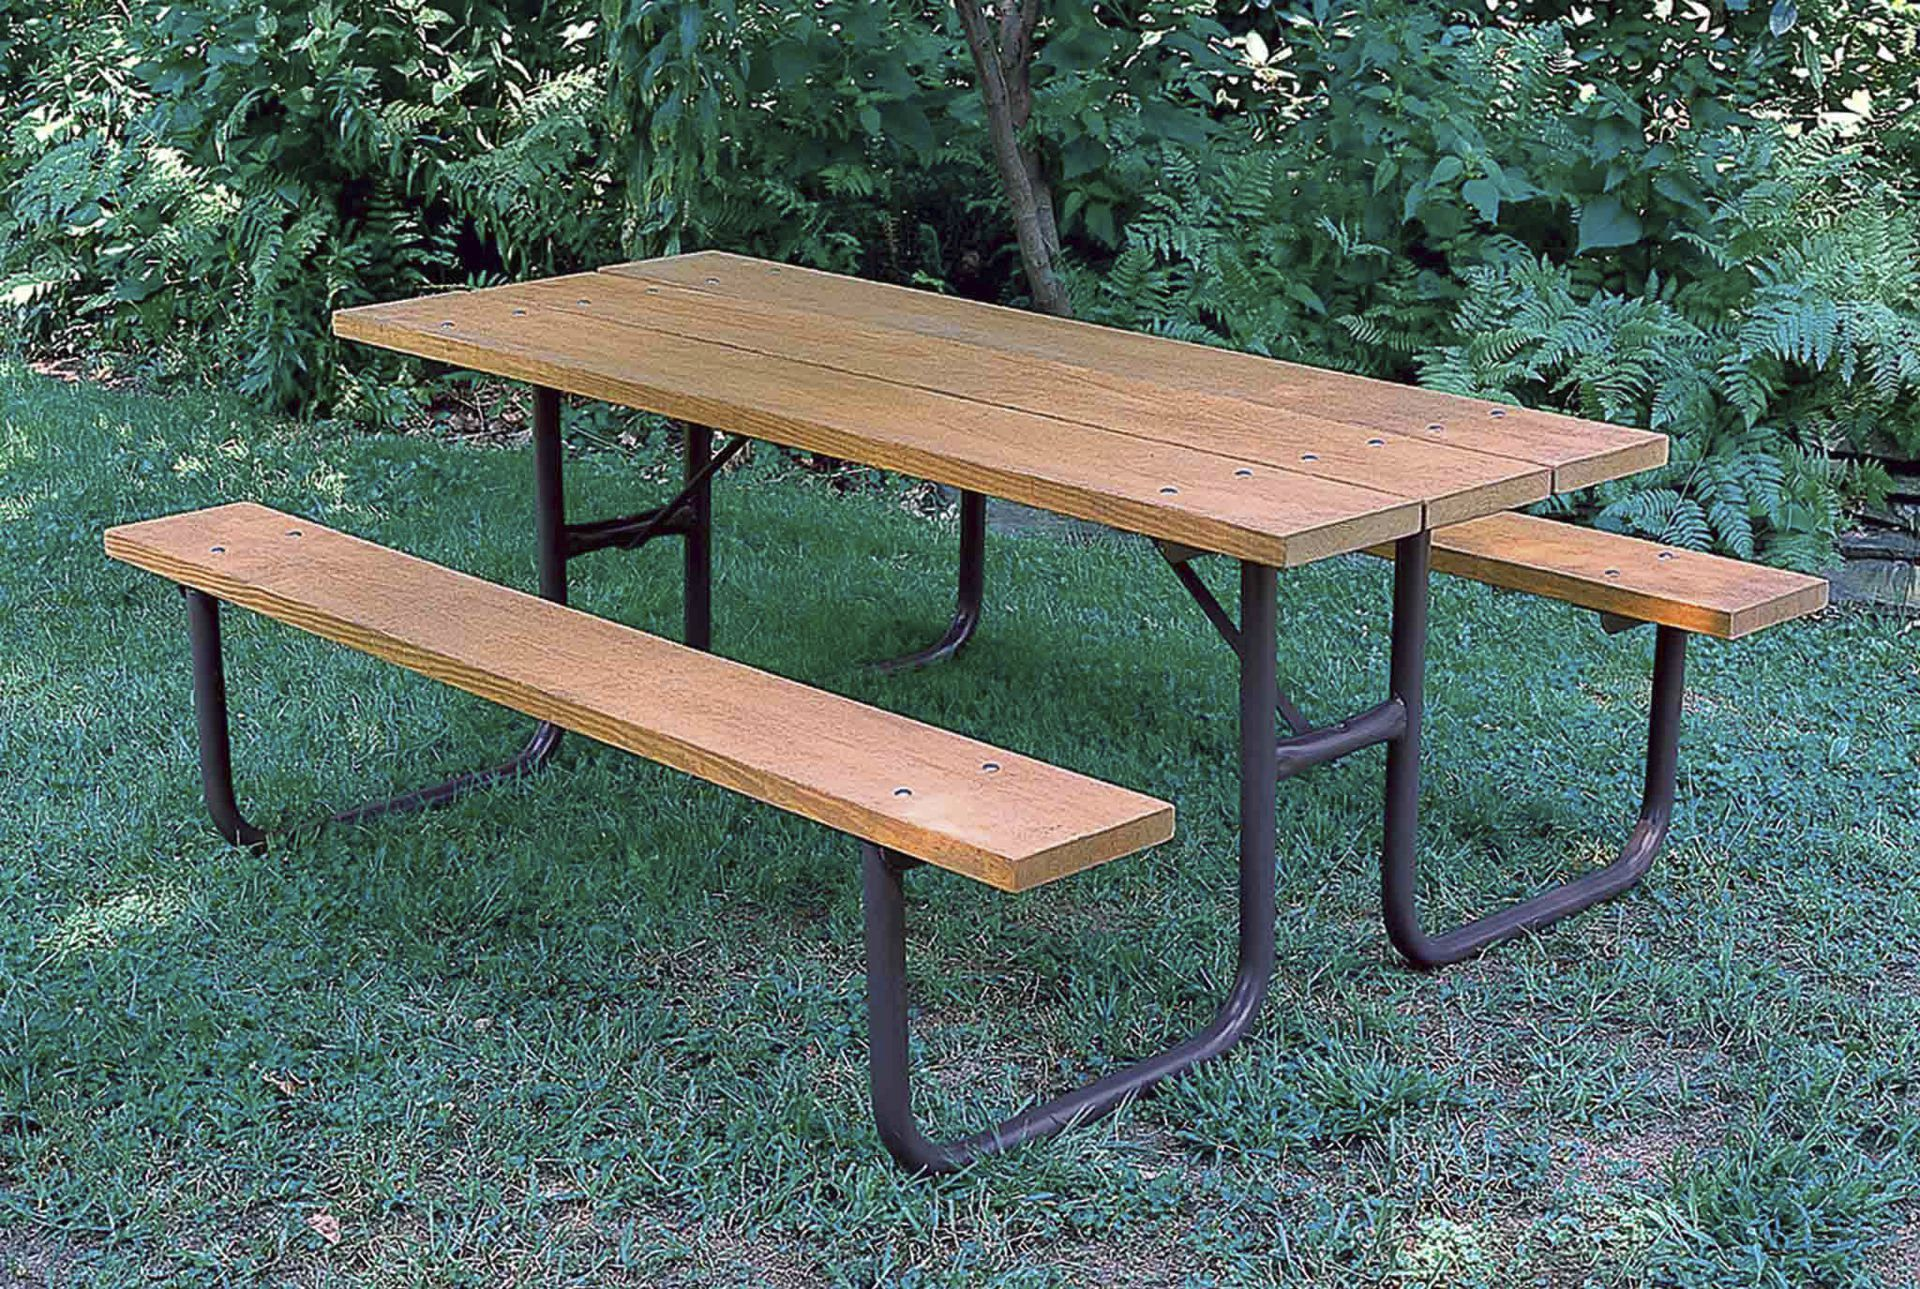 Contemporary Picnic Table Wooden Aluminum Plastic DuMor - Plastic bench that turns into a picnic table